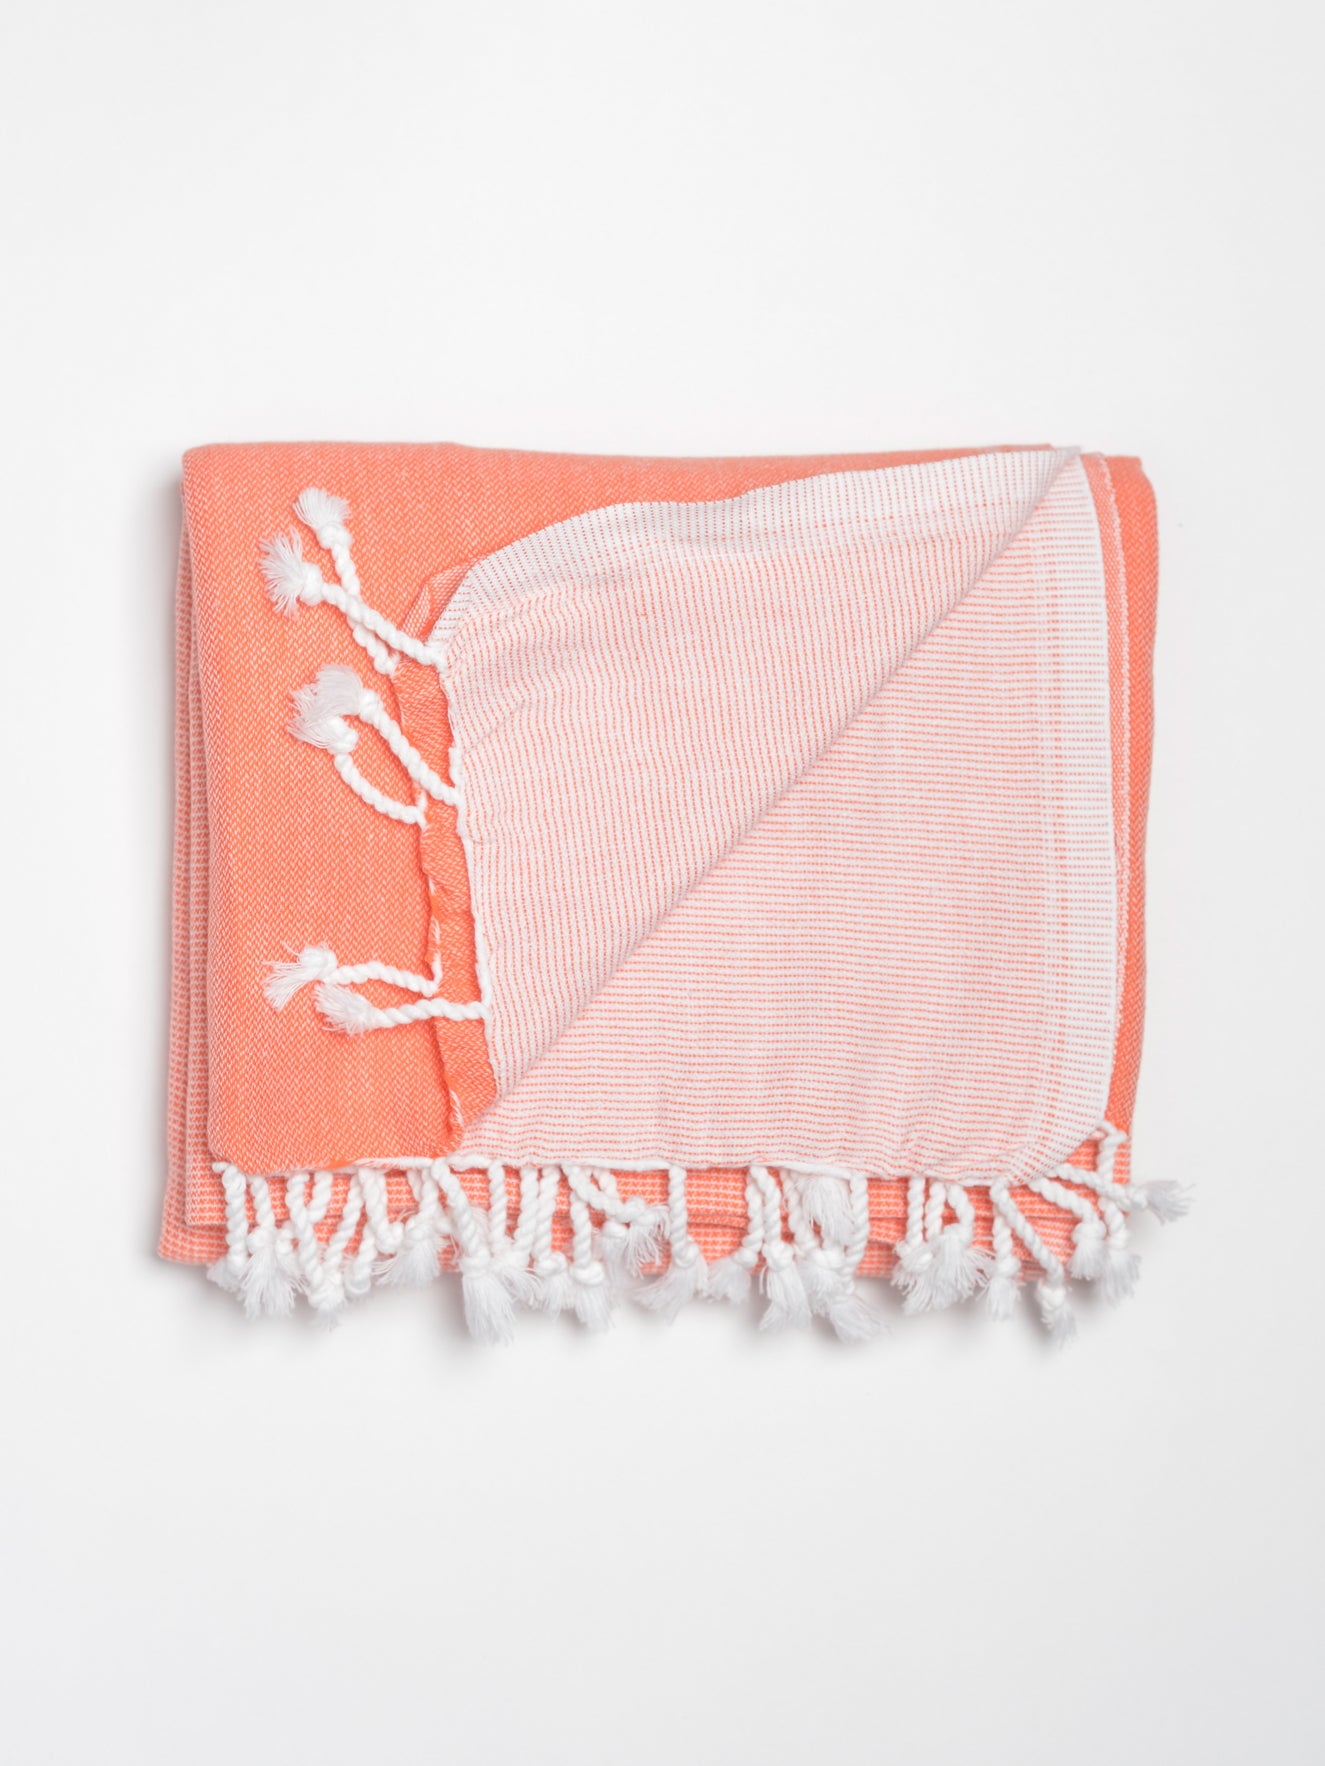 Beach and bath Turkish towel in a gradient coral to light coral colour